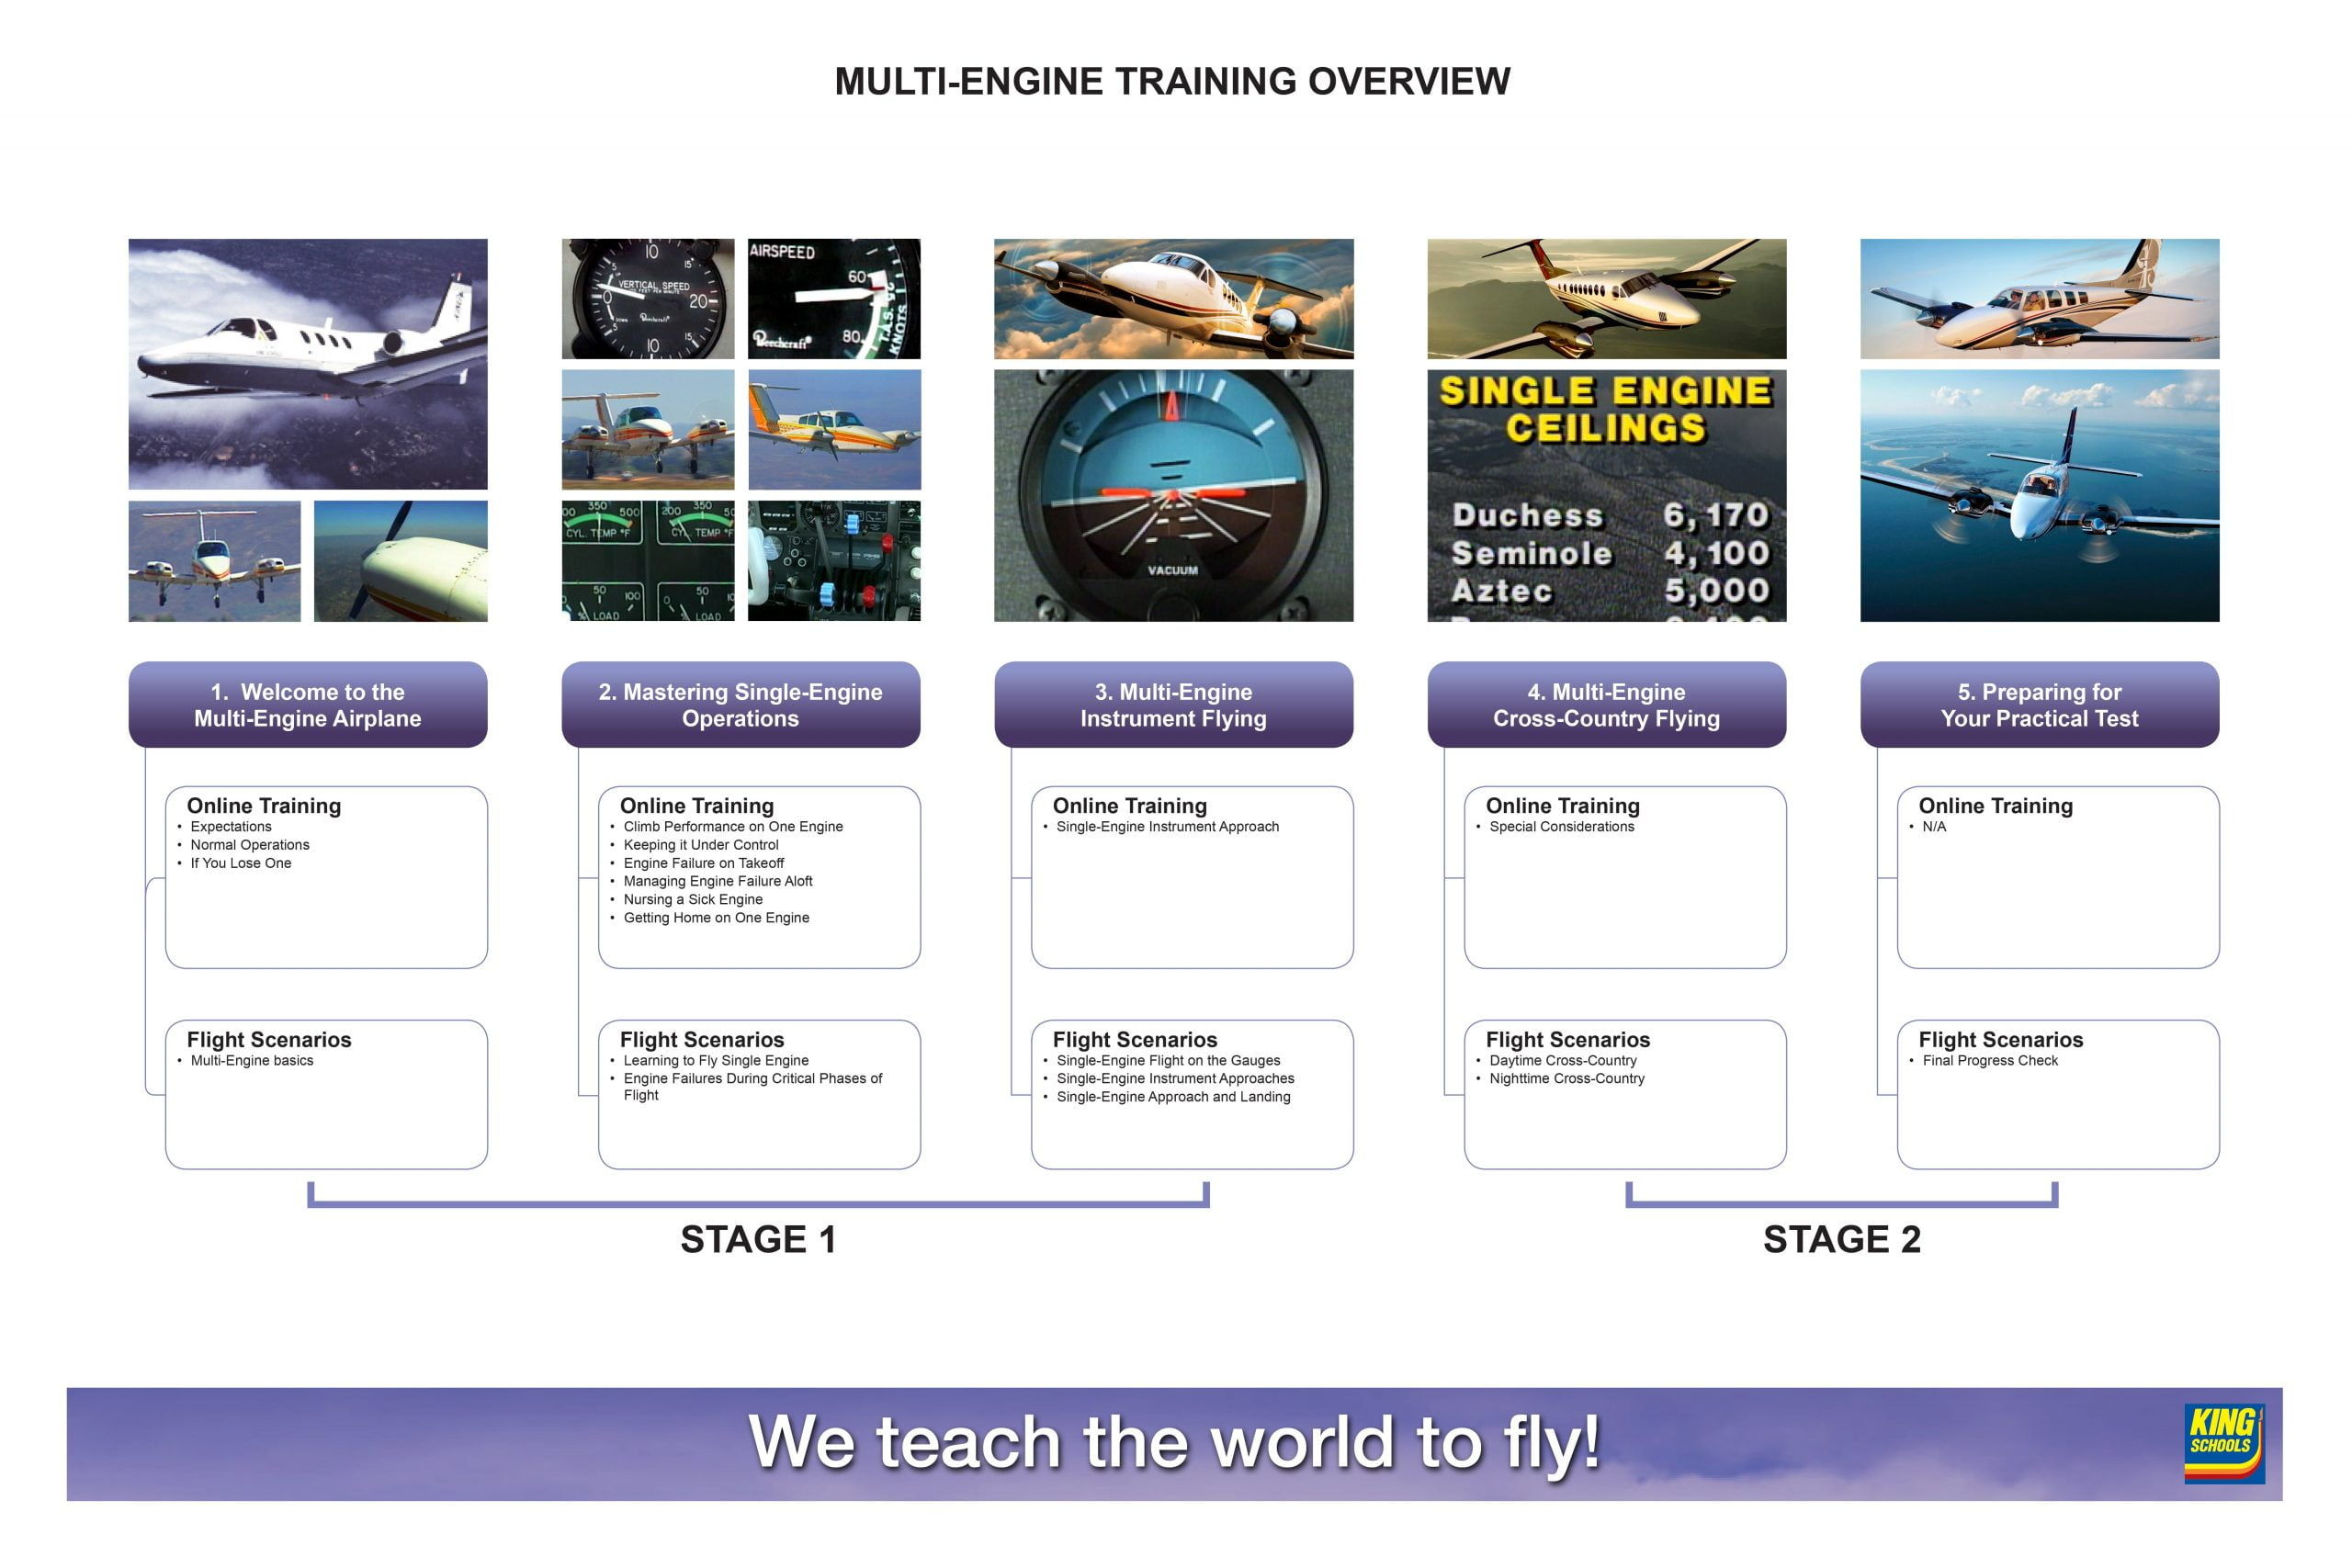 multiengine training overview